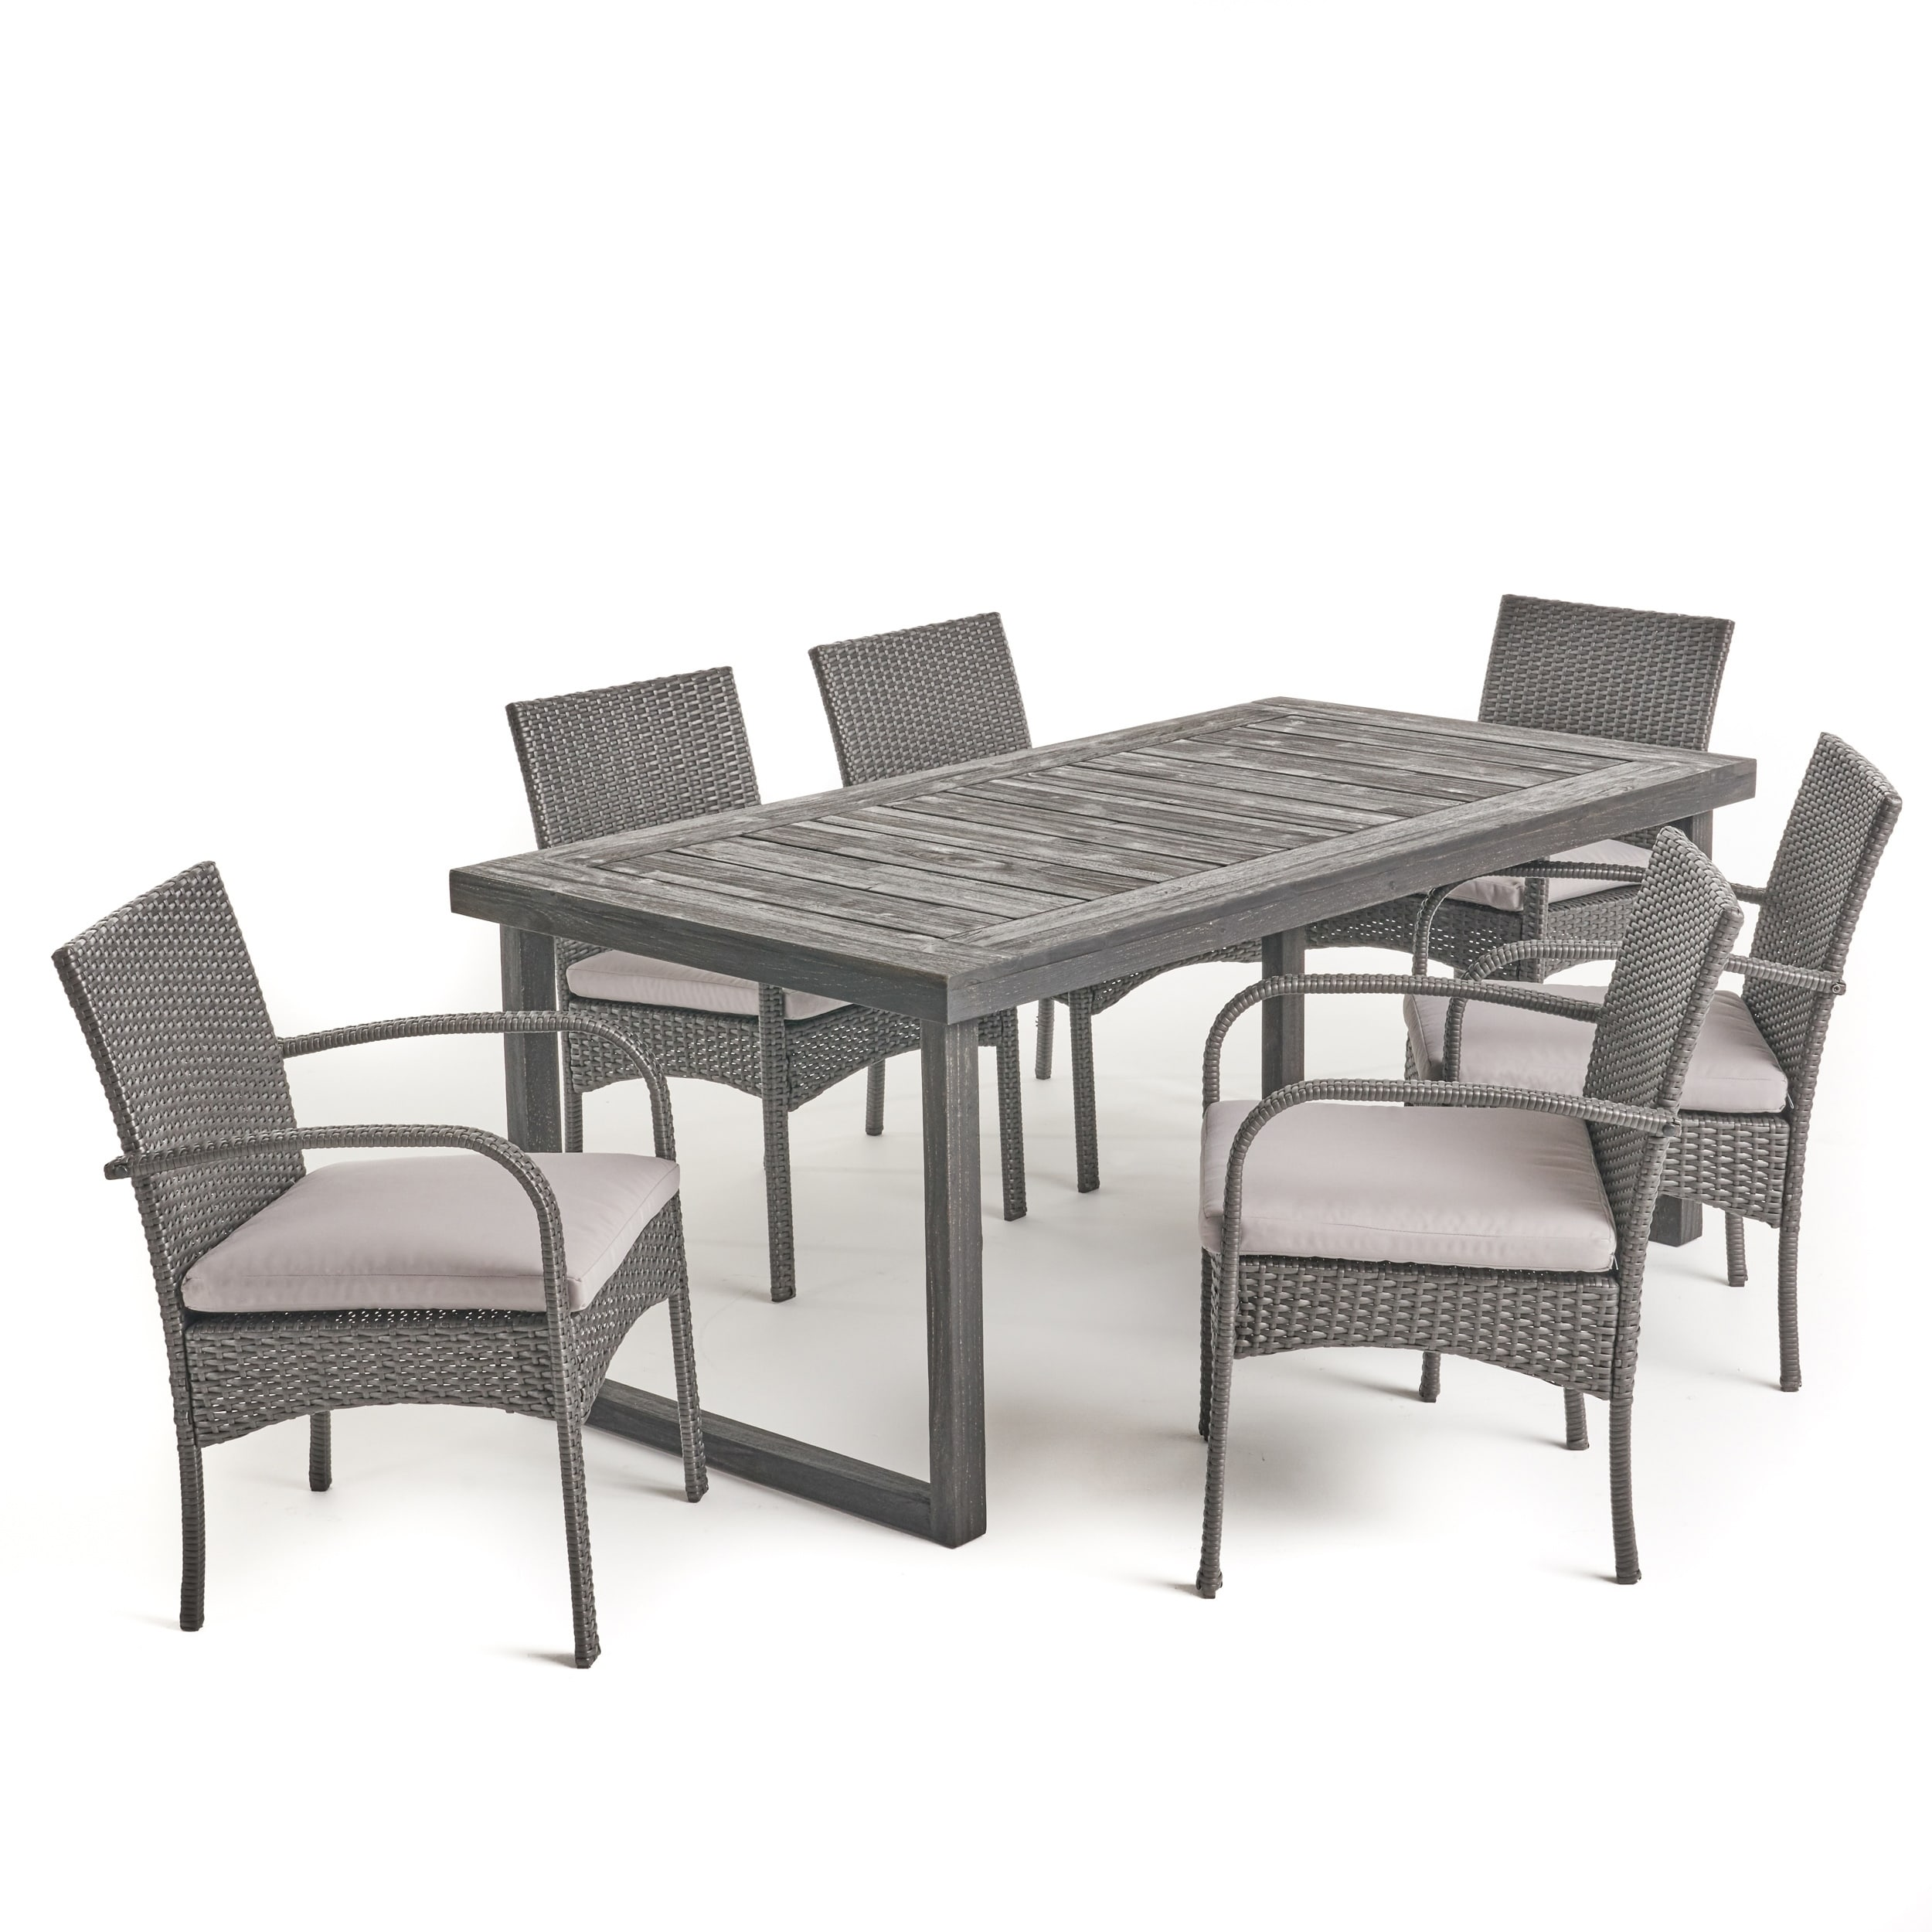 Shop stillwater outdoor 6 seater acacia wood dining set with wicker chairs by christopher knight home free shipping today overstock com 23553123